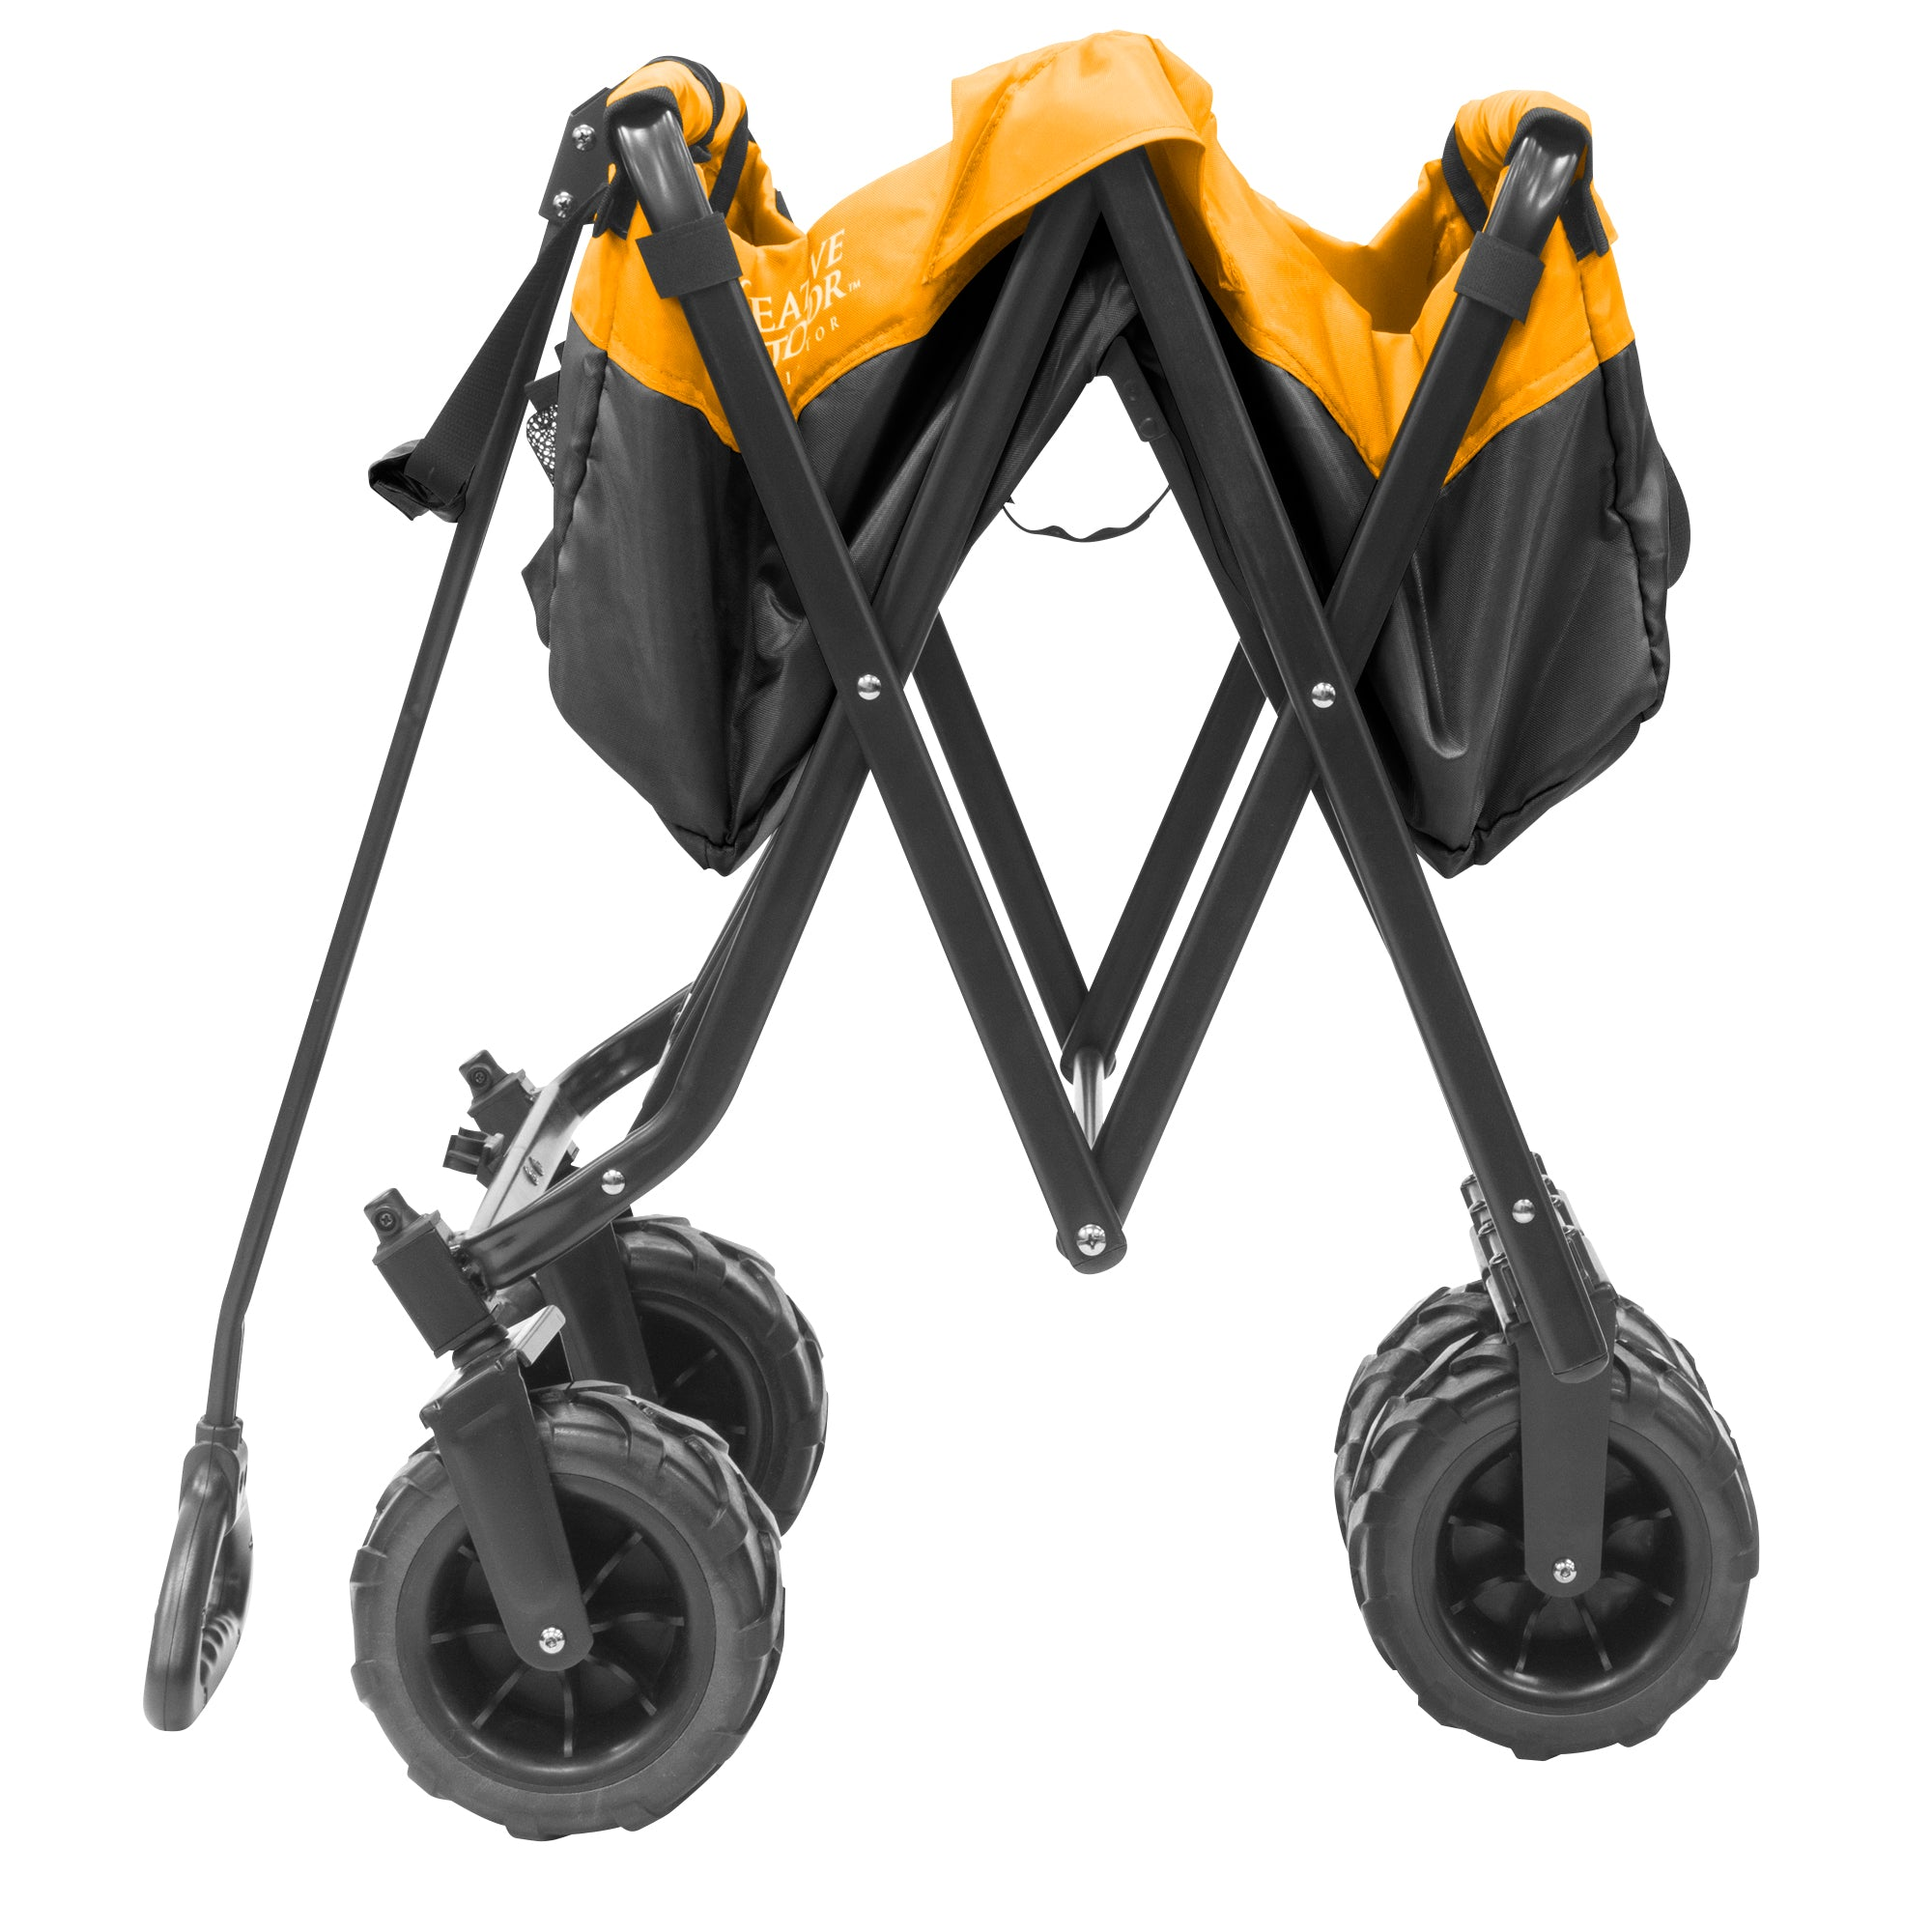 Creative Outdoor 900460 All-Terrain Folding Wagon Black Yellow Folding